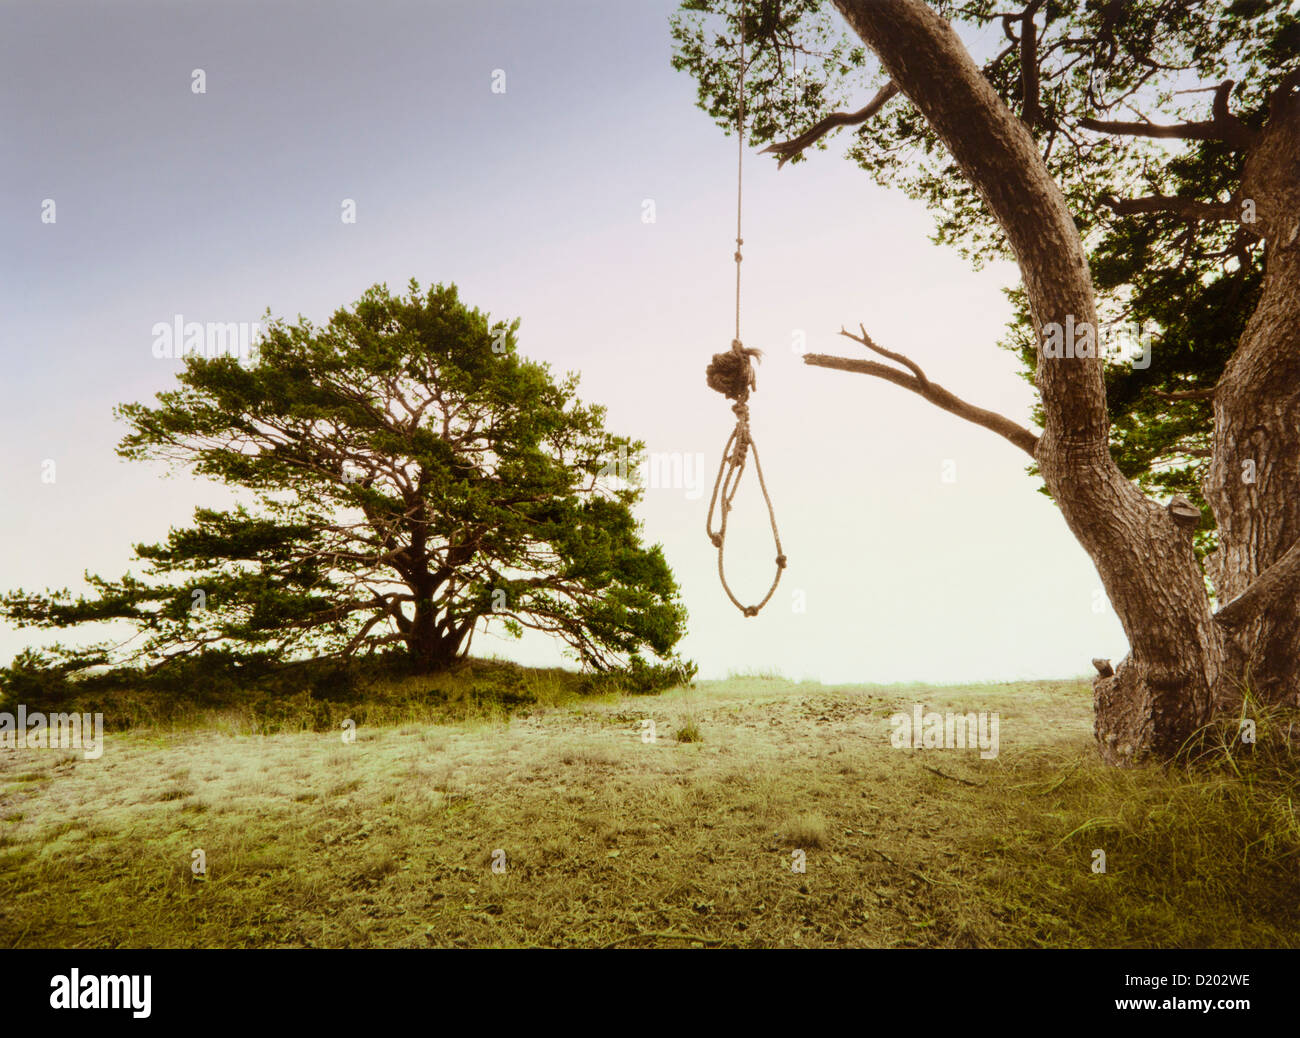 Rope knotted to a sling, hanging from the branch of a pine tree, Skane, Sweden, Europe - Stock Image